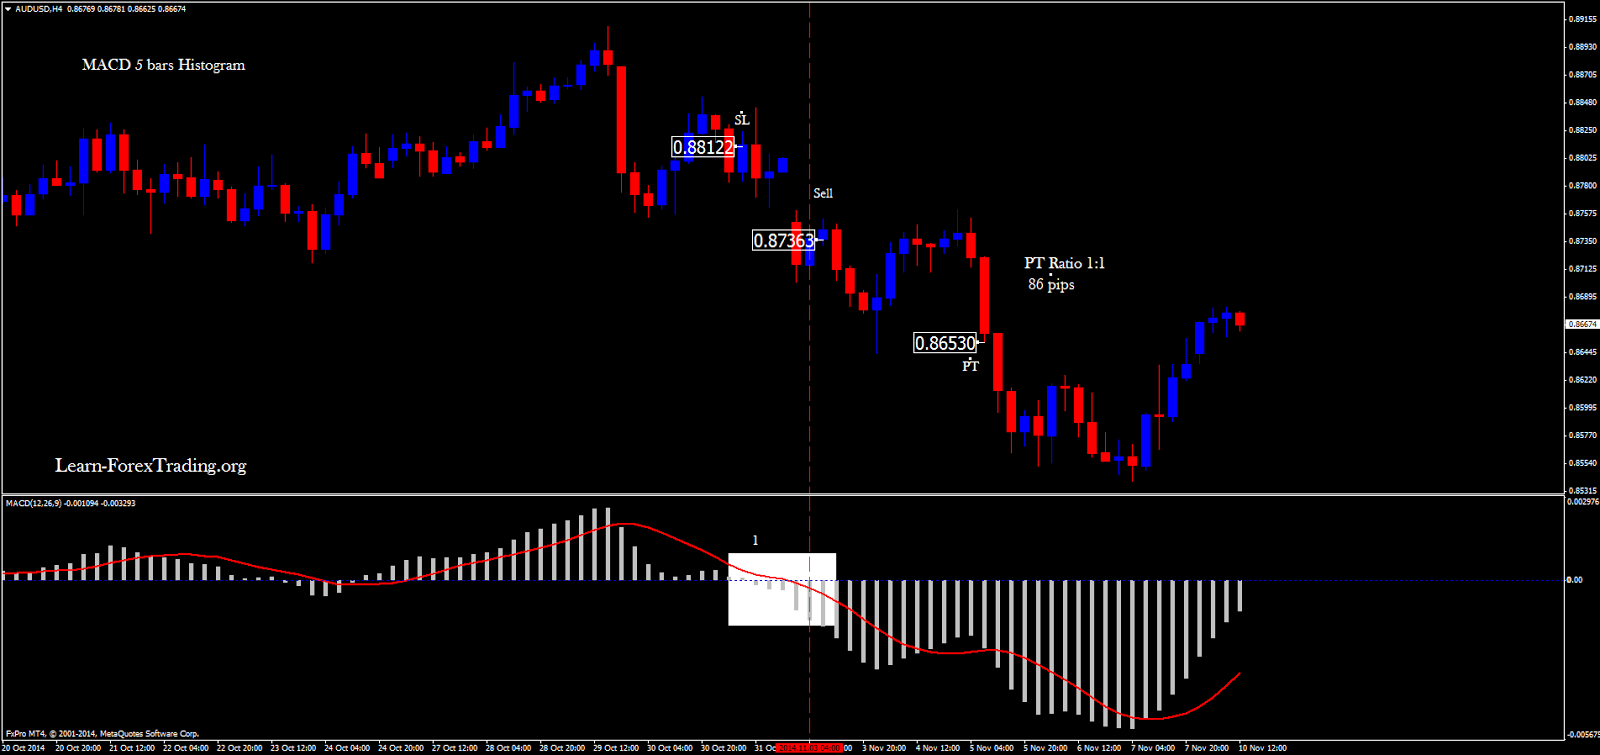 MACD 5 bars histogram